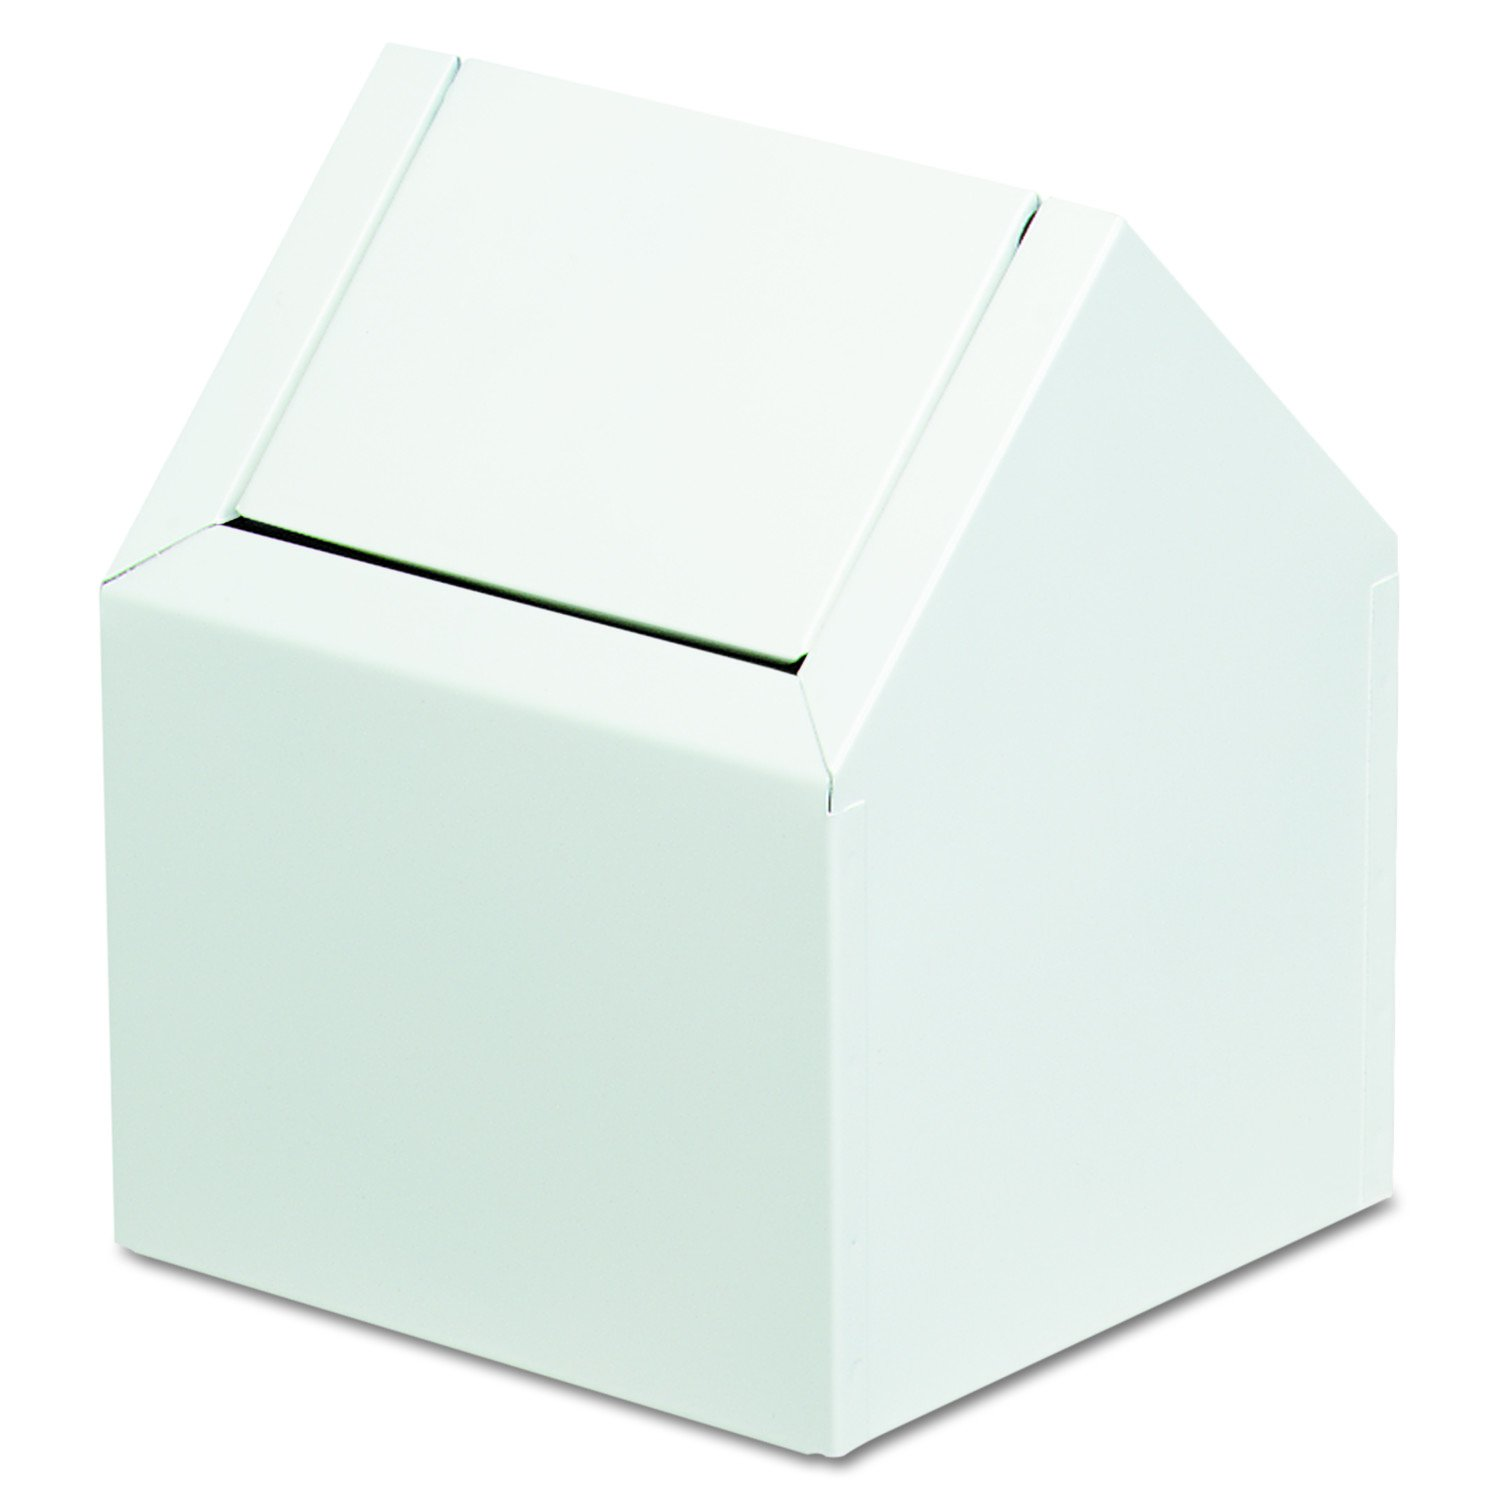 Hospeco 2201 9'' Width x 10-3/4'' Height x 9'' Depth, White Color, C-Swing Napkin Receptacle by Hospeco